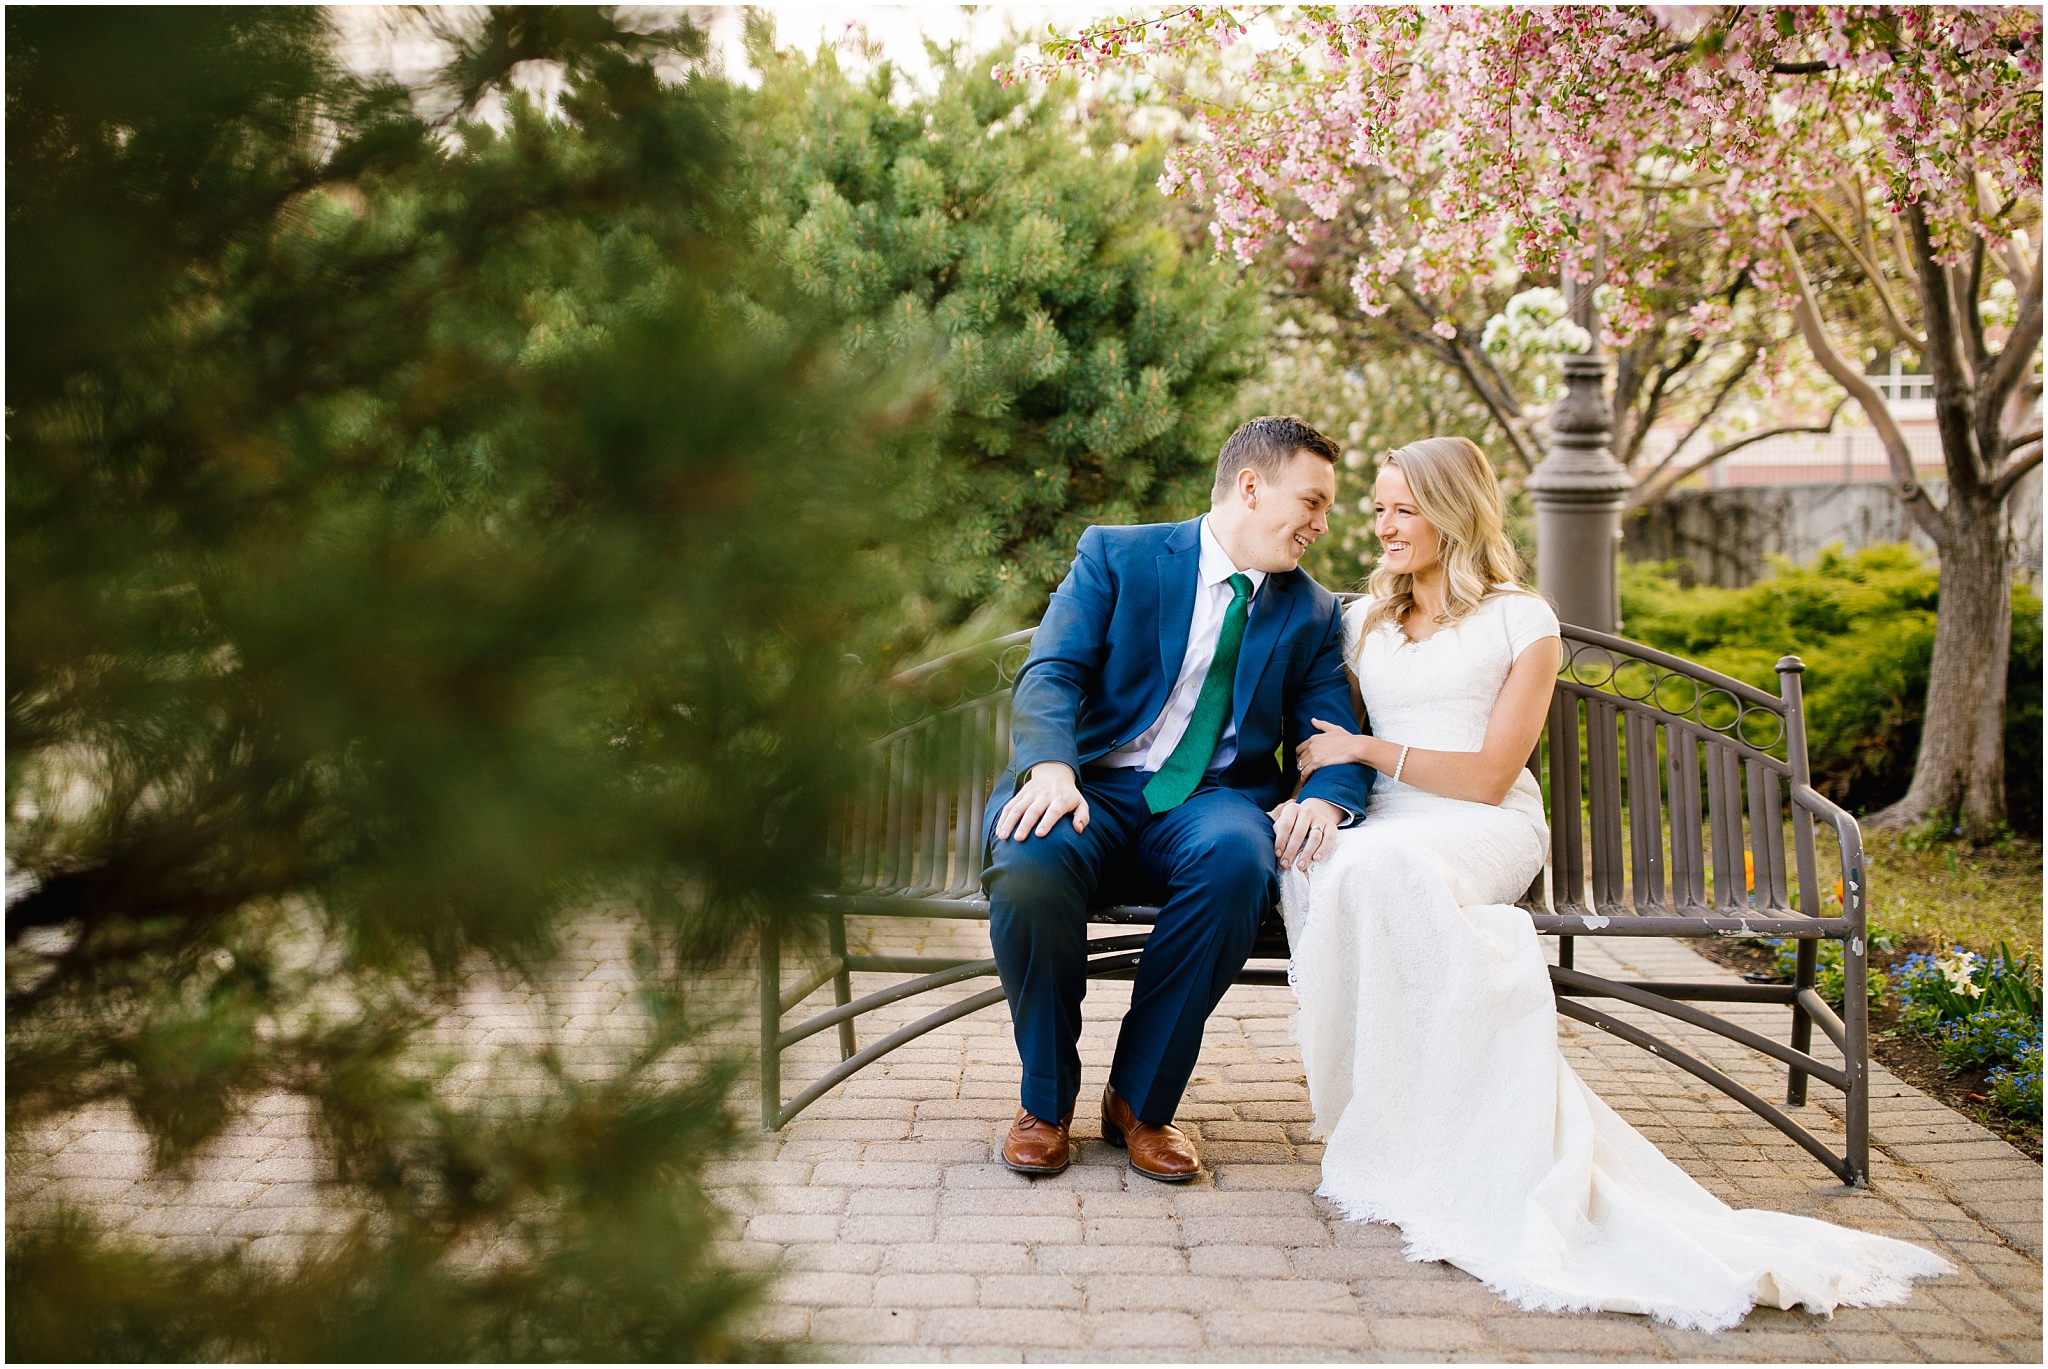 Lizzie-B-Imagery-Utah-Wedding-Photographer-Thanksgiving-Point-Payson-Temple_0010.jpg